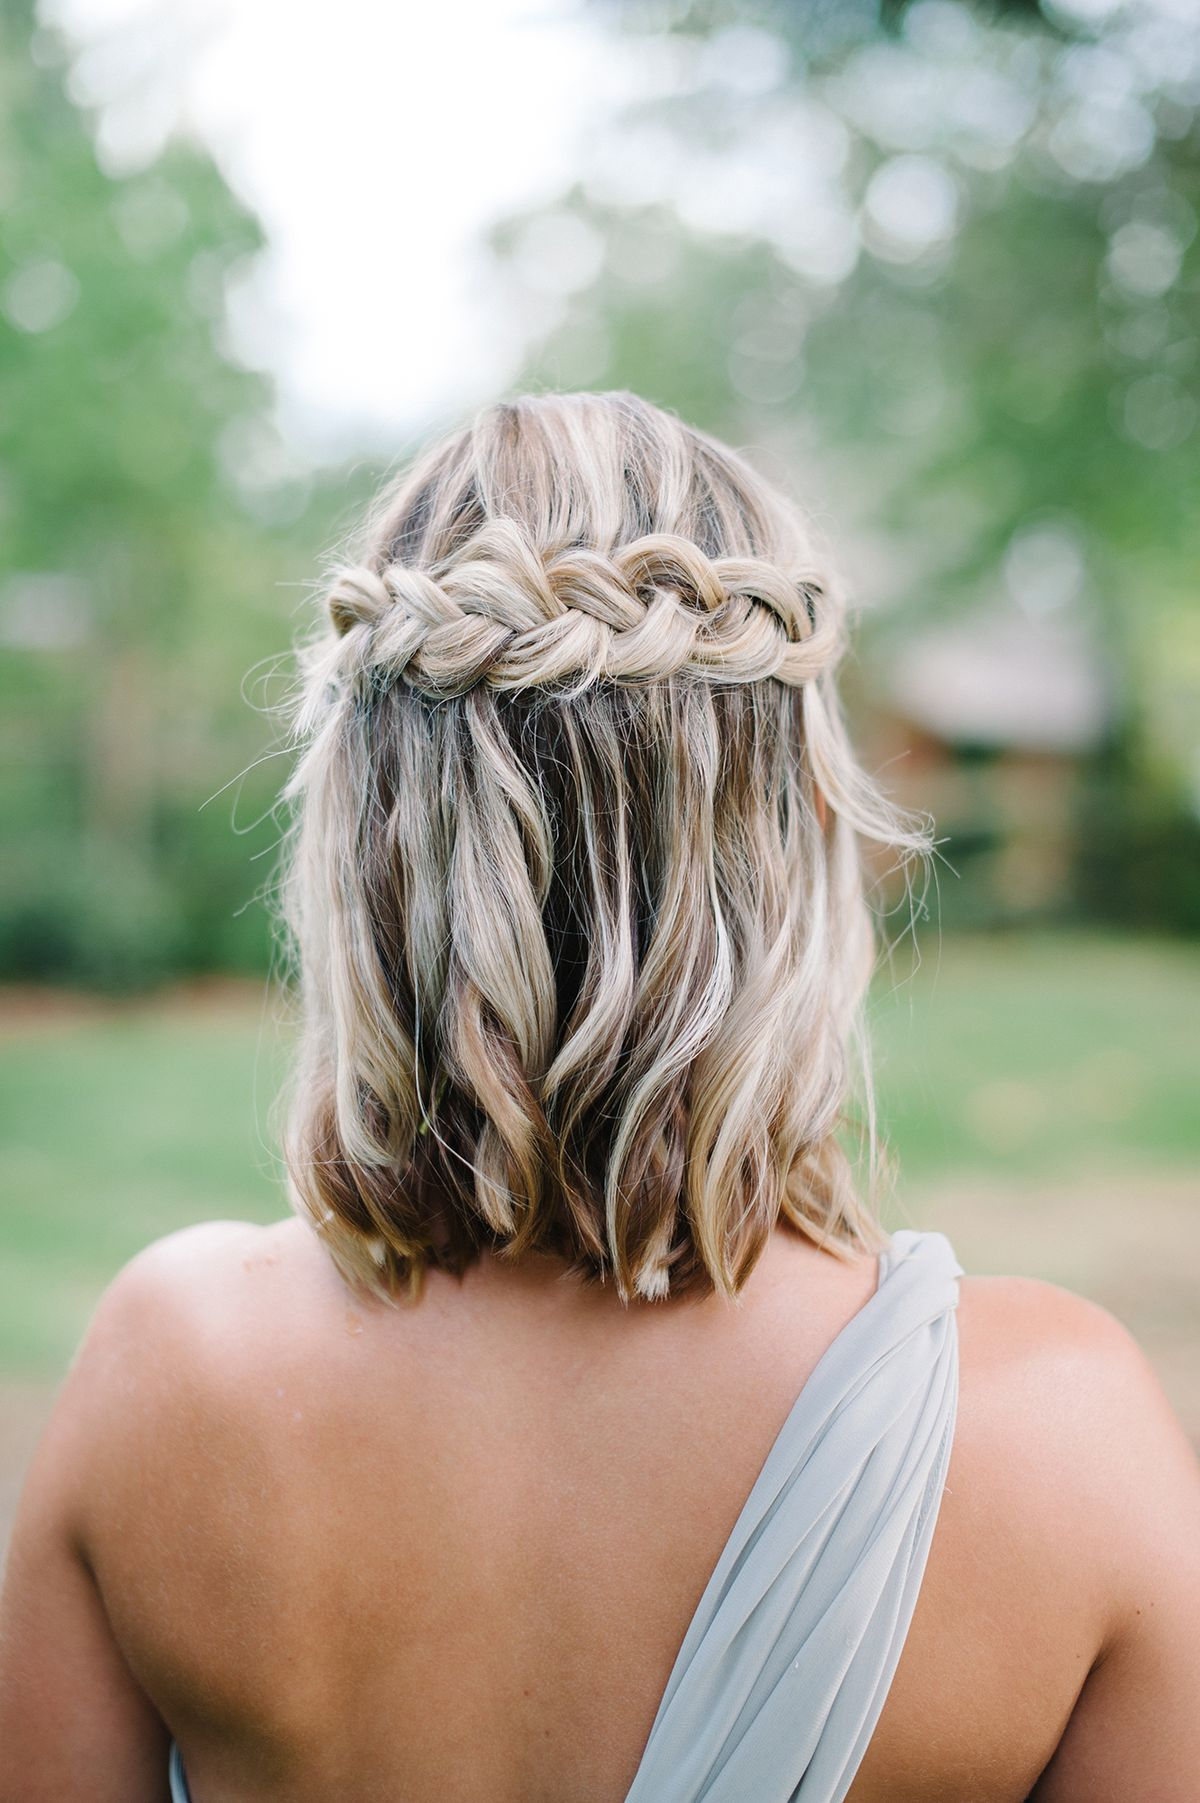 simple wedding hairstyles best photos | wedding hairstyles